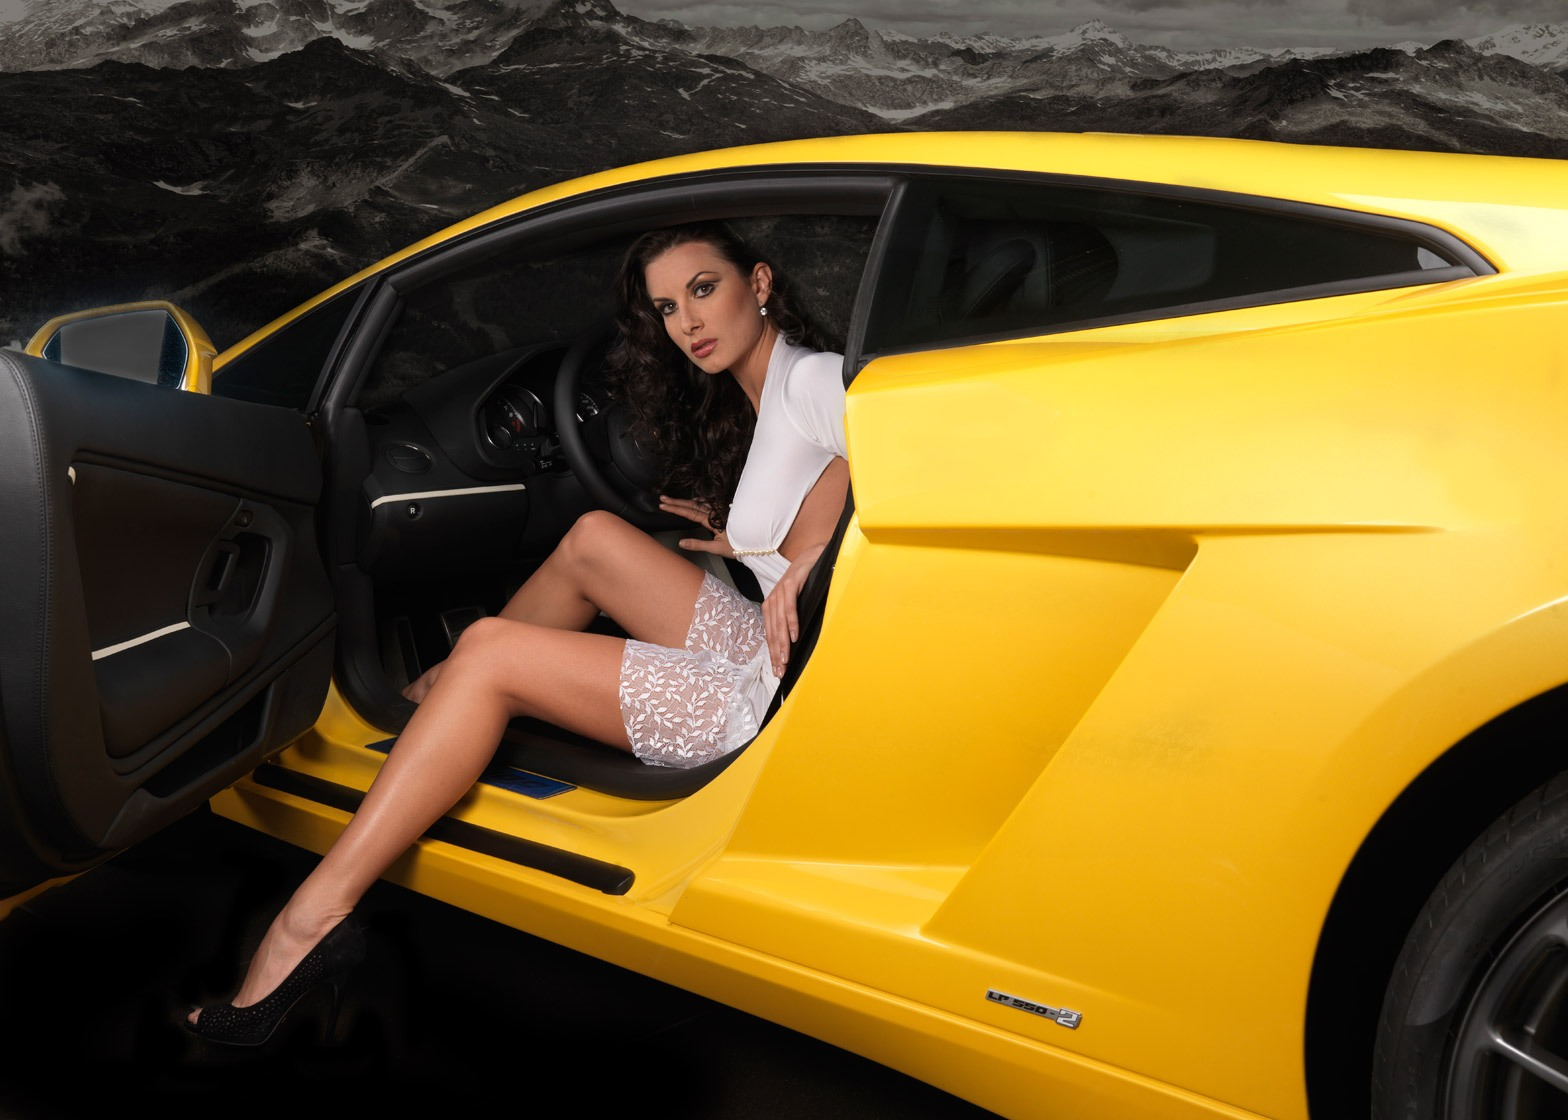 Lamborghini Lp550 2 Balboni Beautiful Car Beautiful Girls My Car Heaven